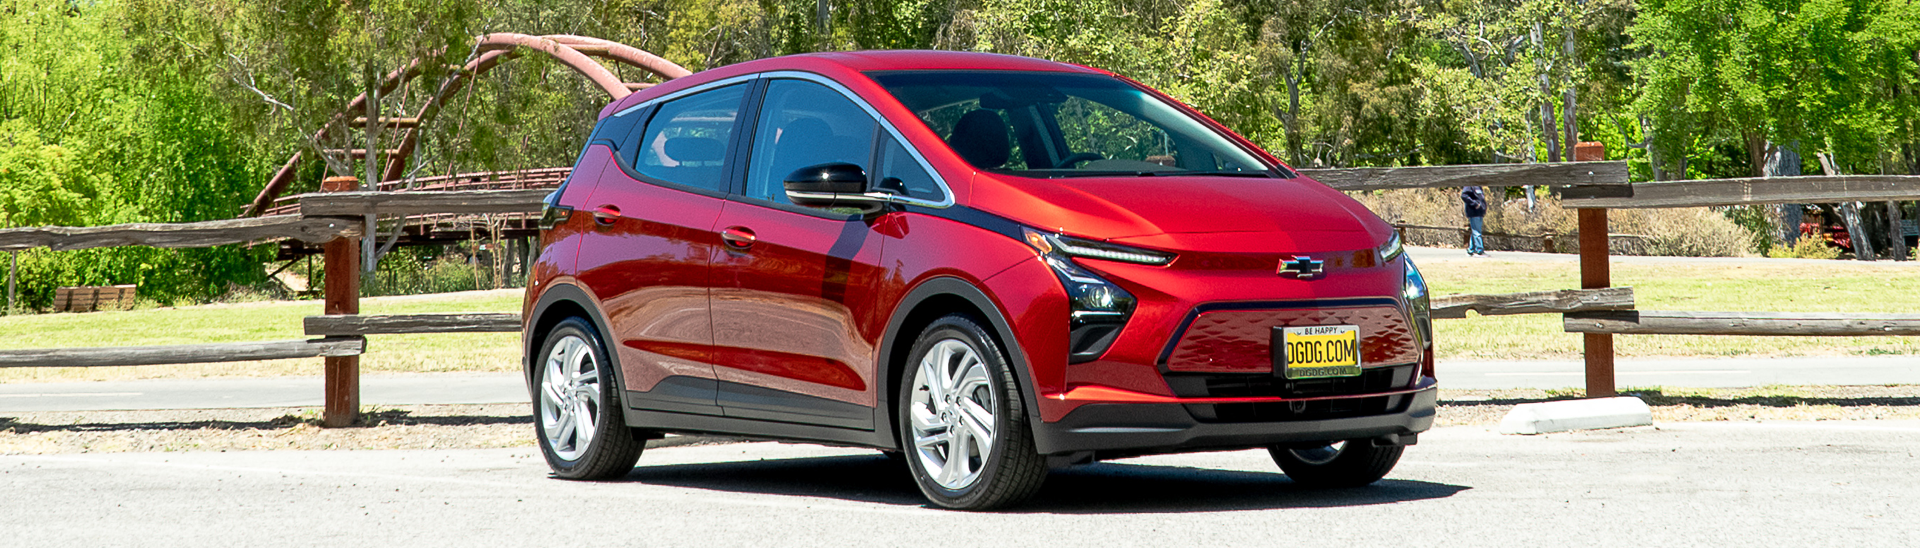 2022 Chevy Bolt EV 1LT in the color Cherry Red Tintcoat parked in a lot with a small bridge in the background.